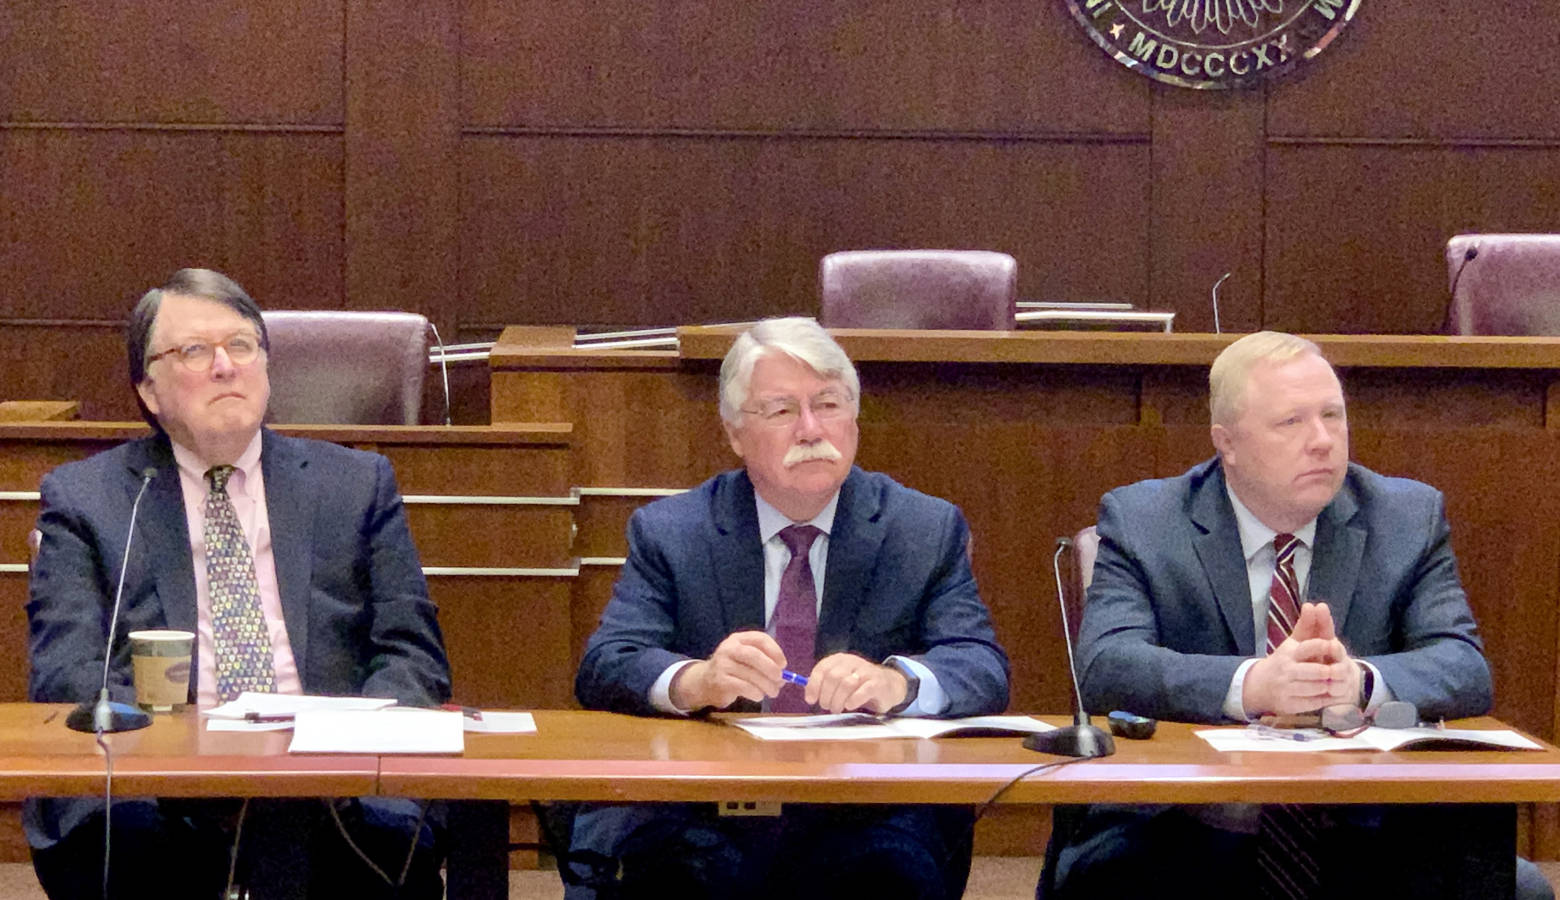 Former Indiana Chief Justice Randall Shepard, former Attorney General Greg Zoeller and Indiana Bar Foundation Executive Director Chuck Dunlap at the unveiling of the 2019 Indiana Civic Health Index. (Brandon Smith/IPB News)